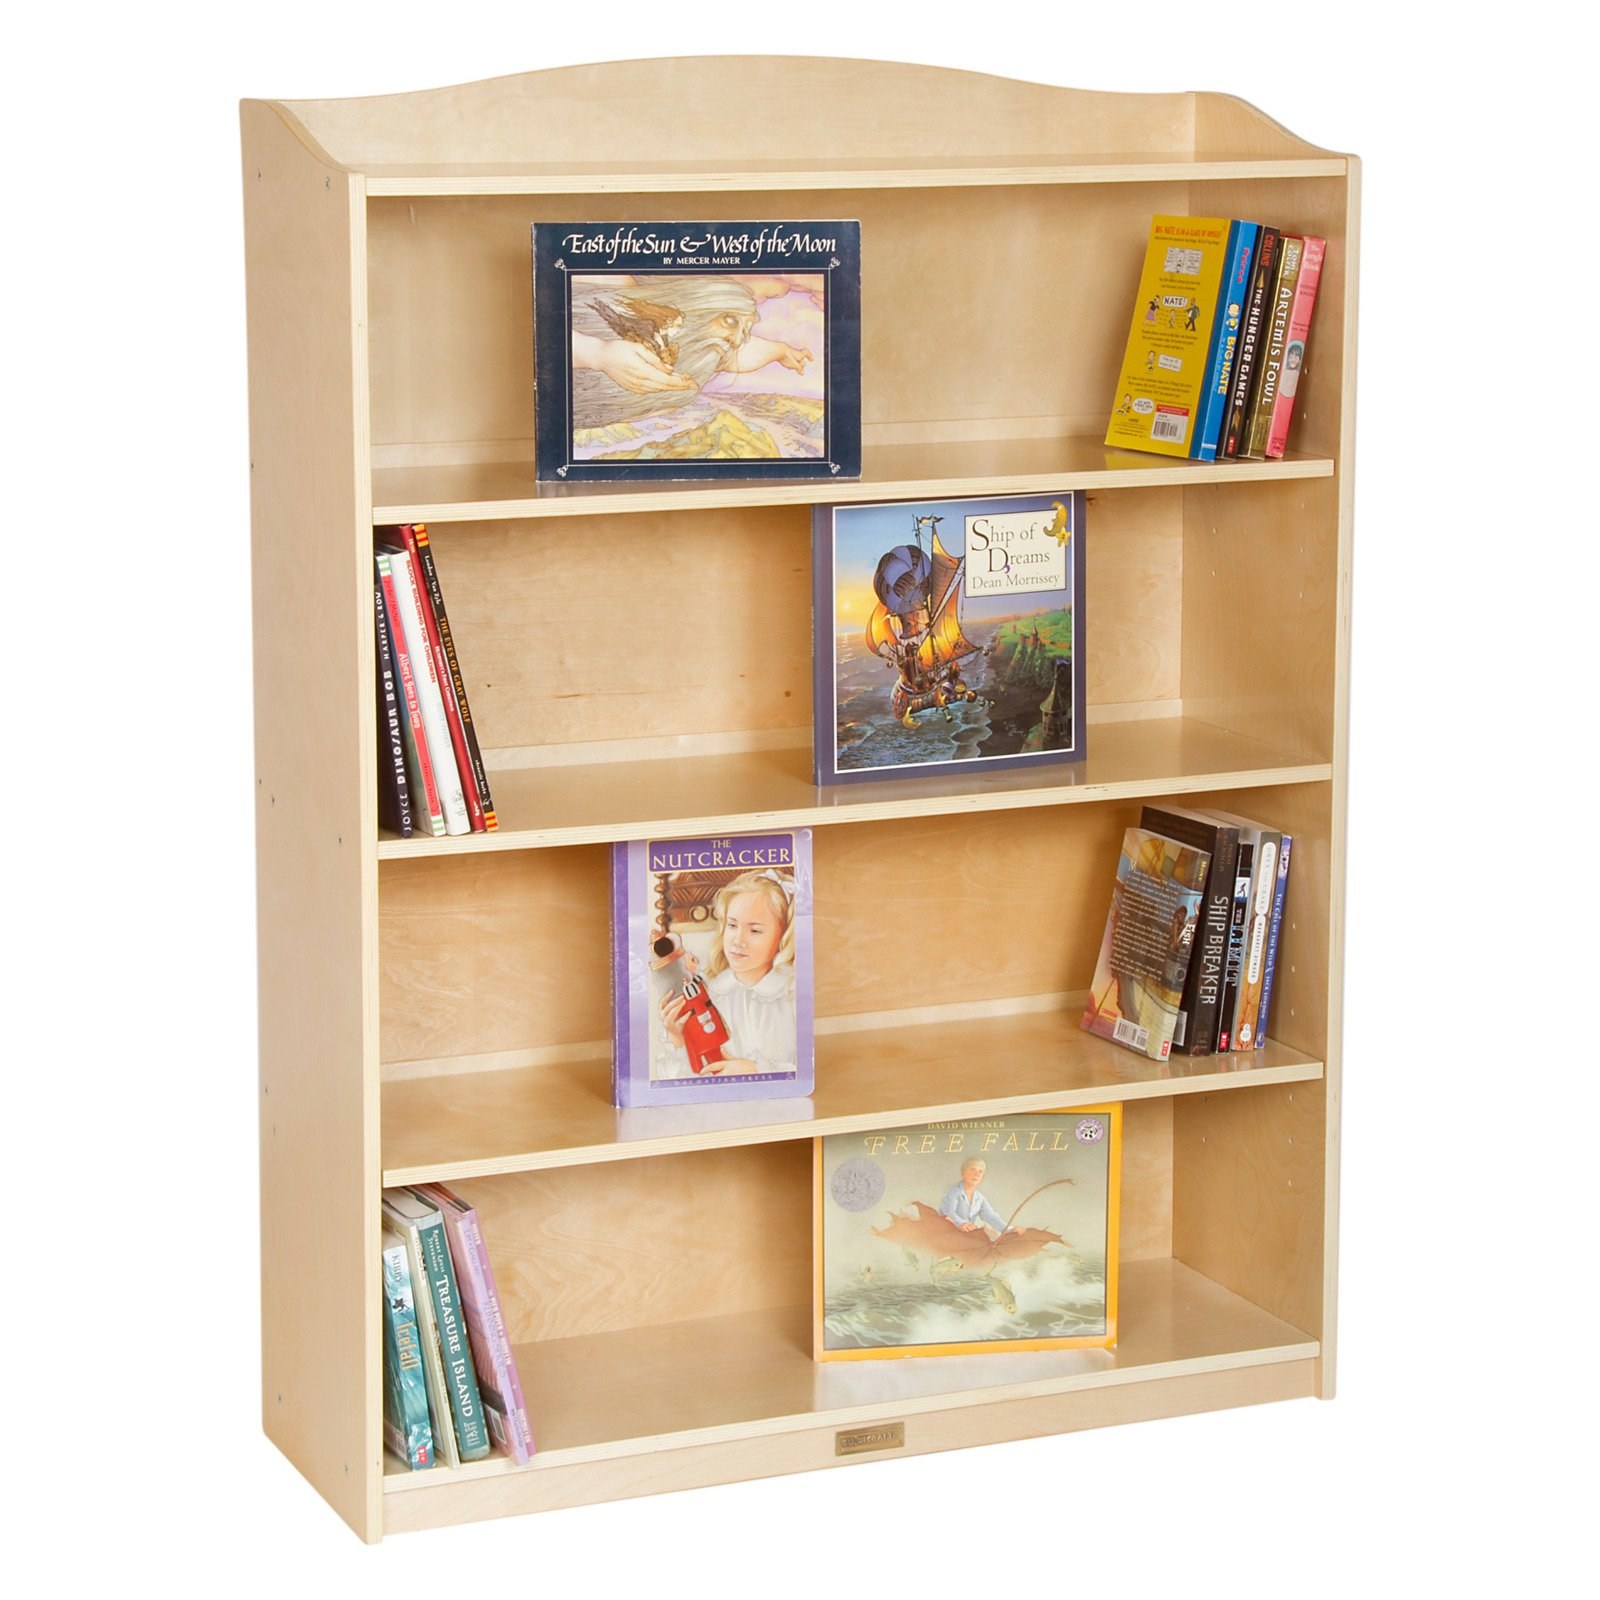 Guidecraft 5 Shelf Bookshelf